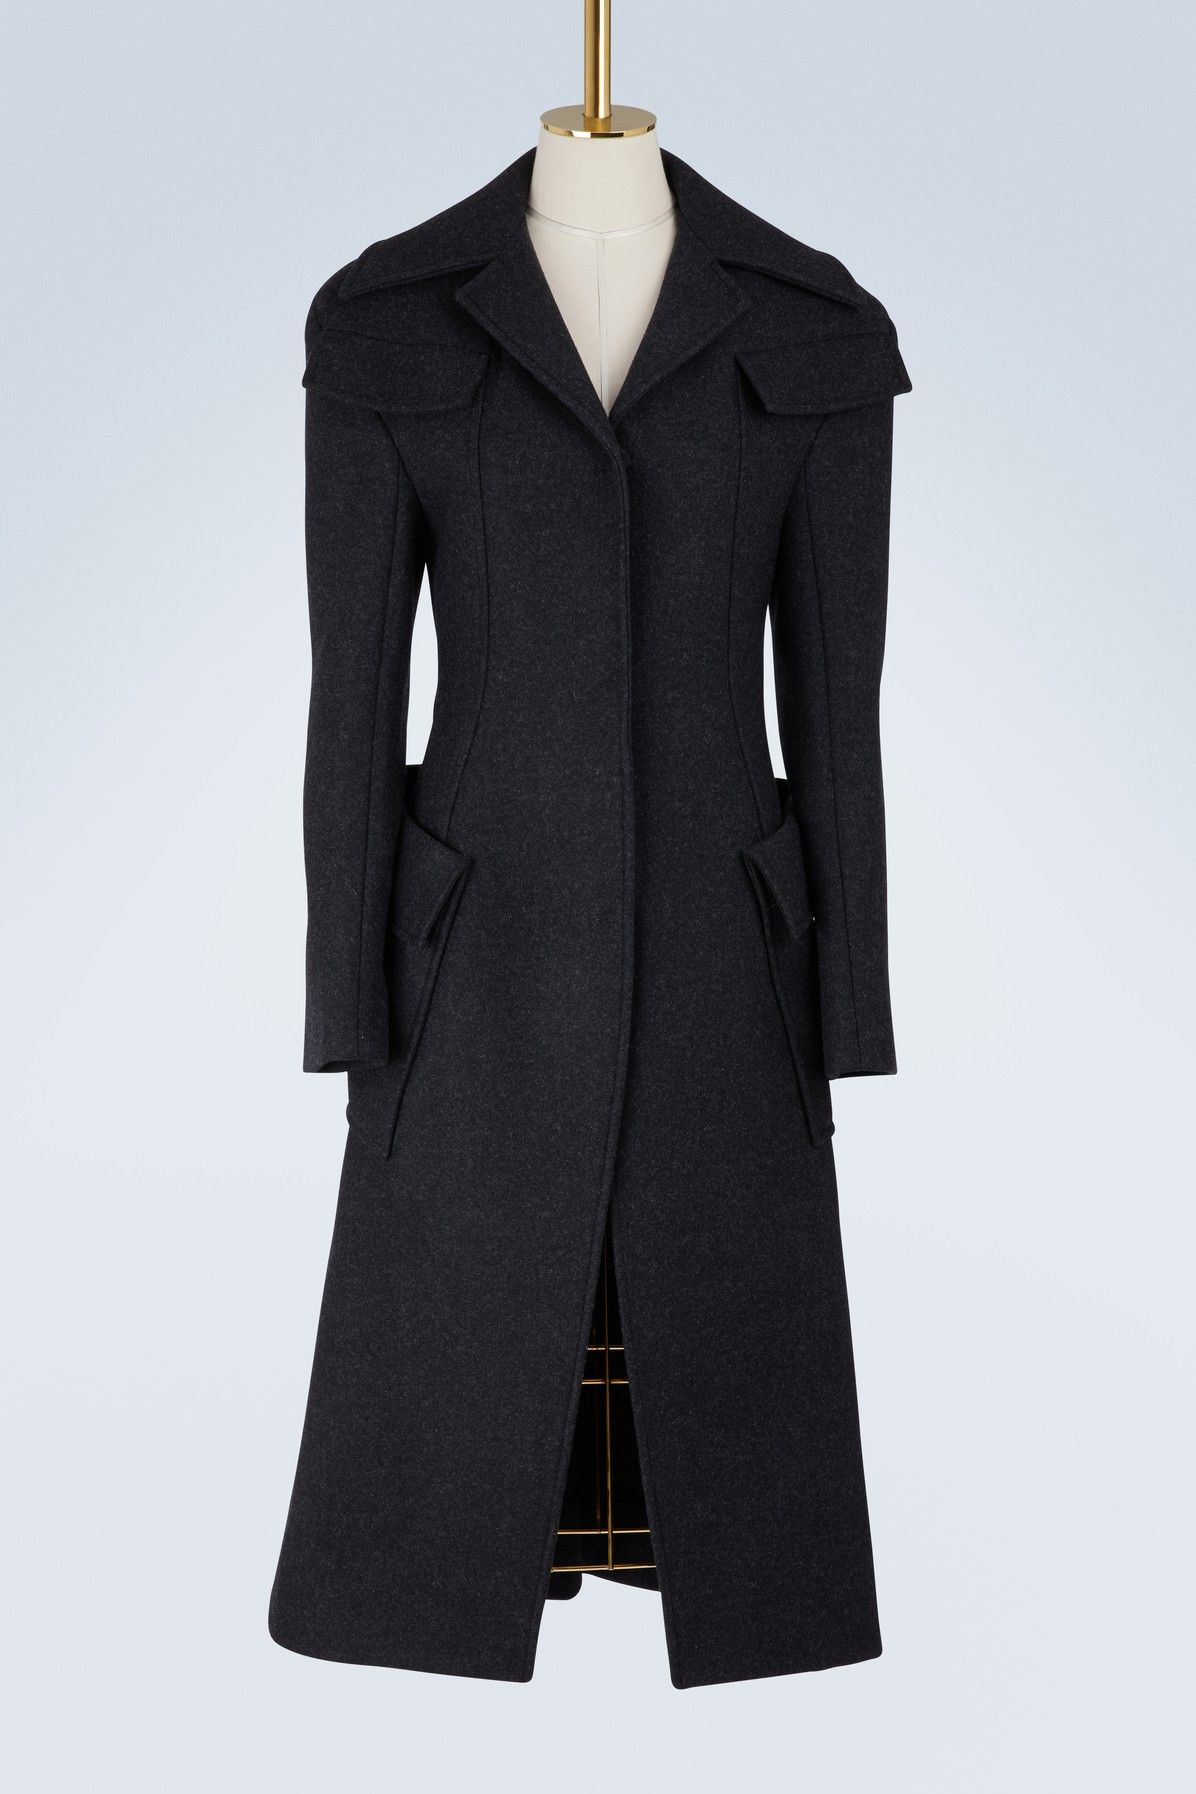 Cheap Find Great Online Shop From China COATS & JACKETS - Coats Jacquemus Free Shipping Visa Payment 5sIWmEF7W